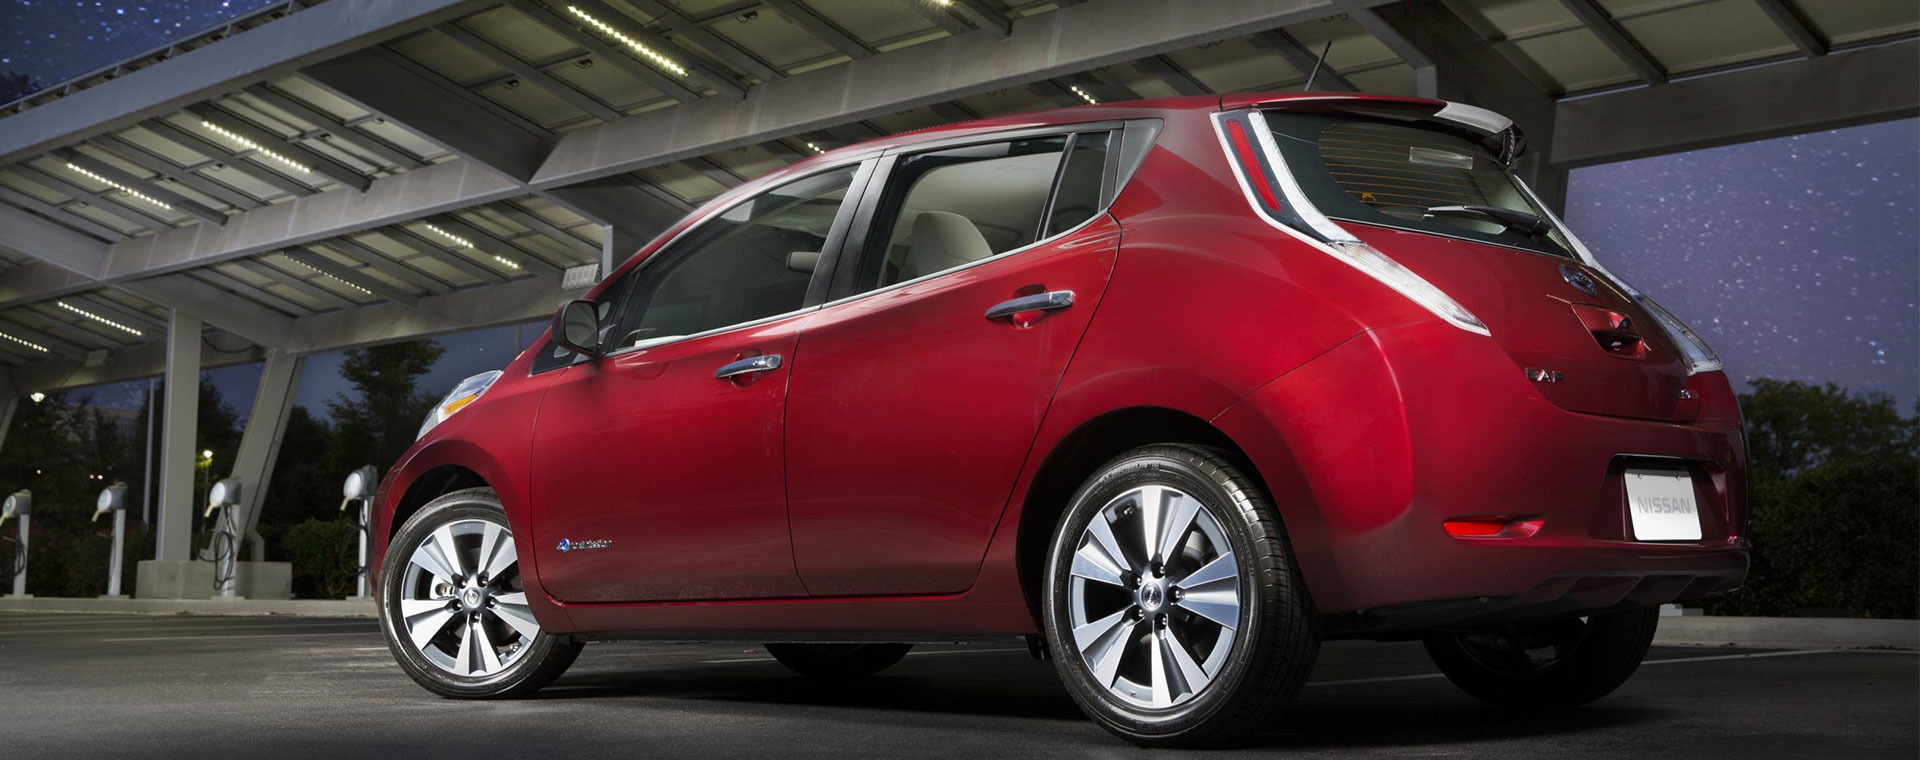 New Leaf inventory at Quirk Nissan